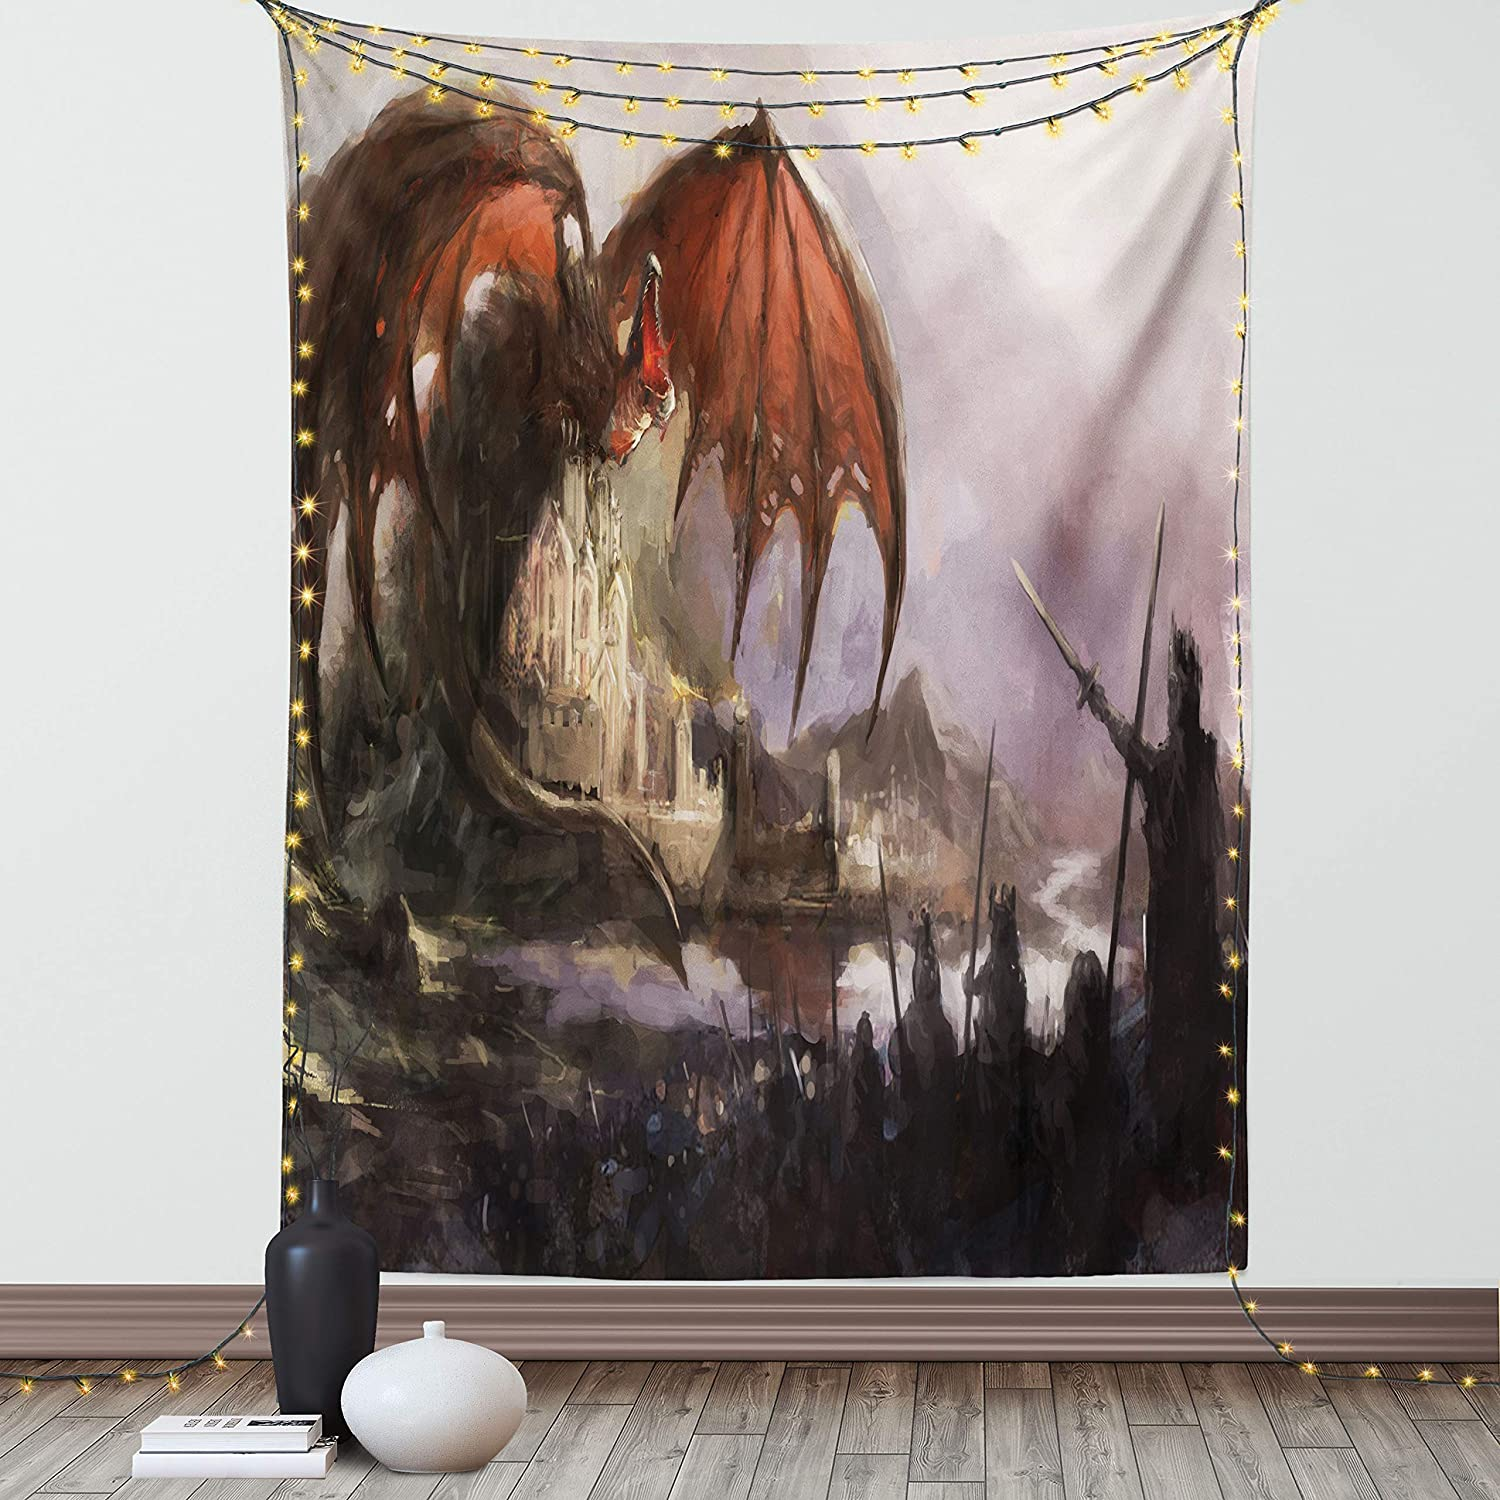 Lunarable Dragon Tapestry, Medieval Fantasy and Dark Knights Scene Fortress Castle Image, Fabric Wall Hanging Decor for Bedroom Living Room Dorm, 30